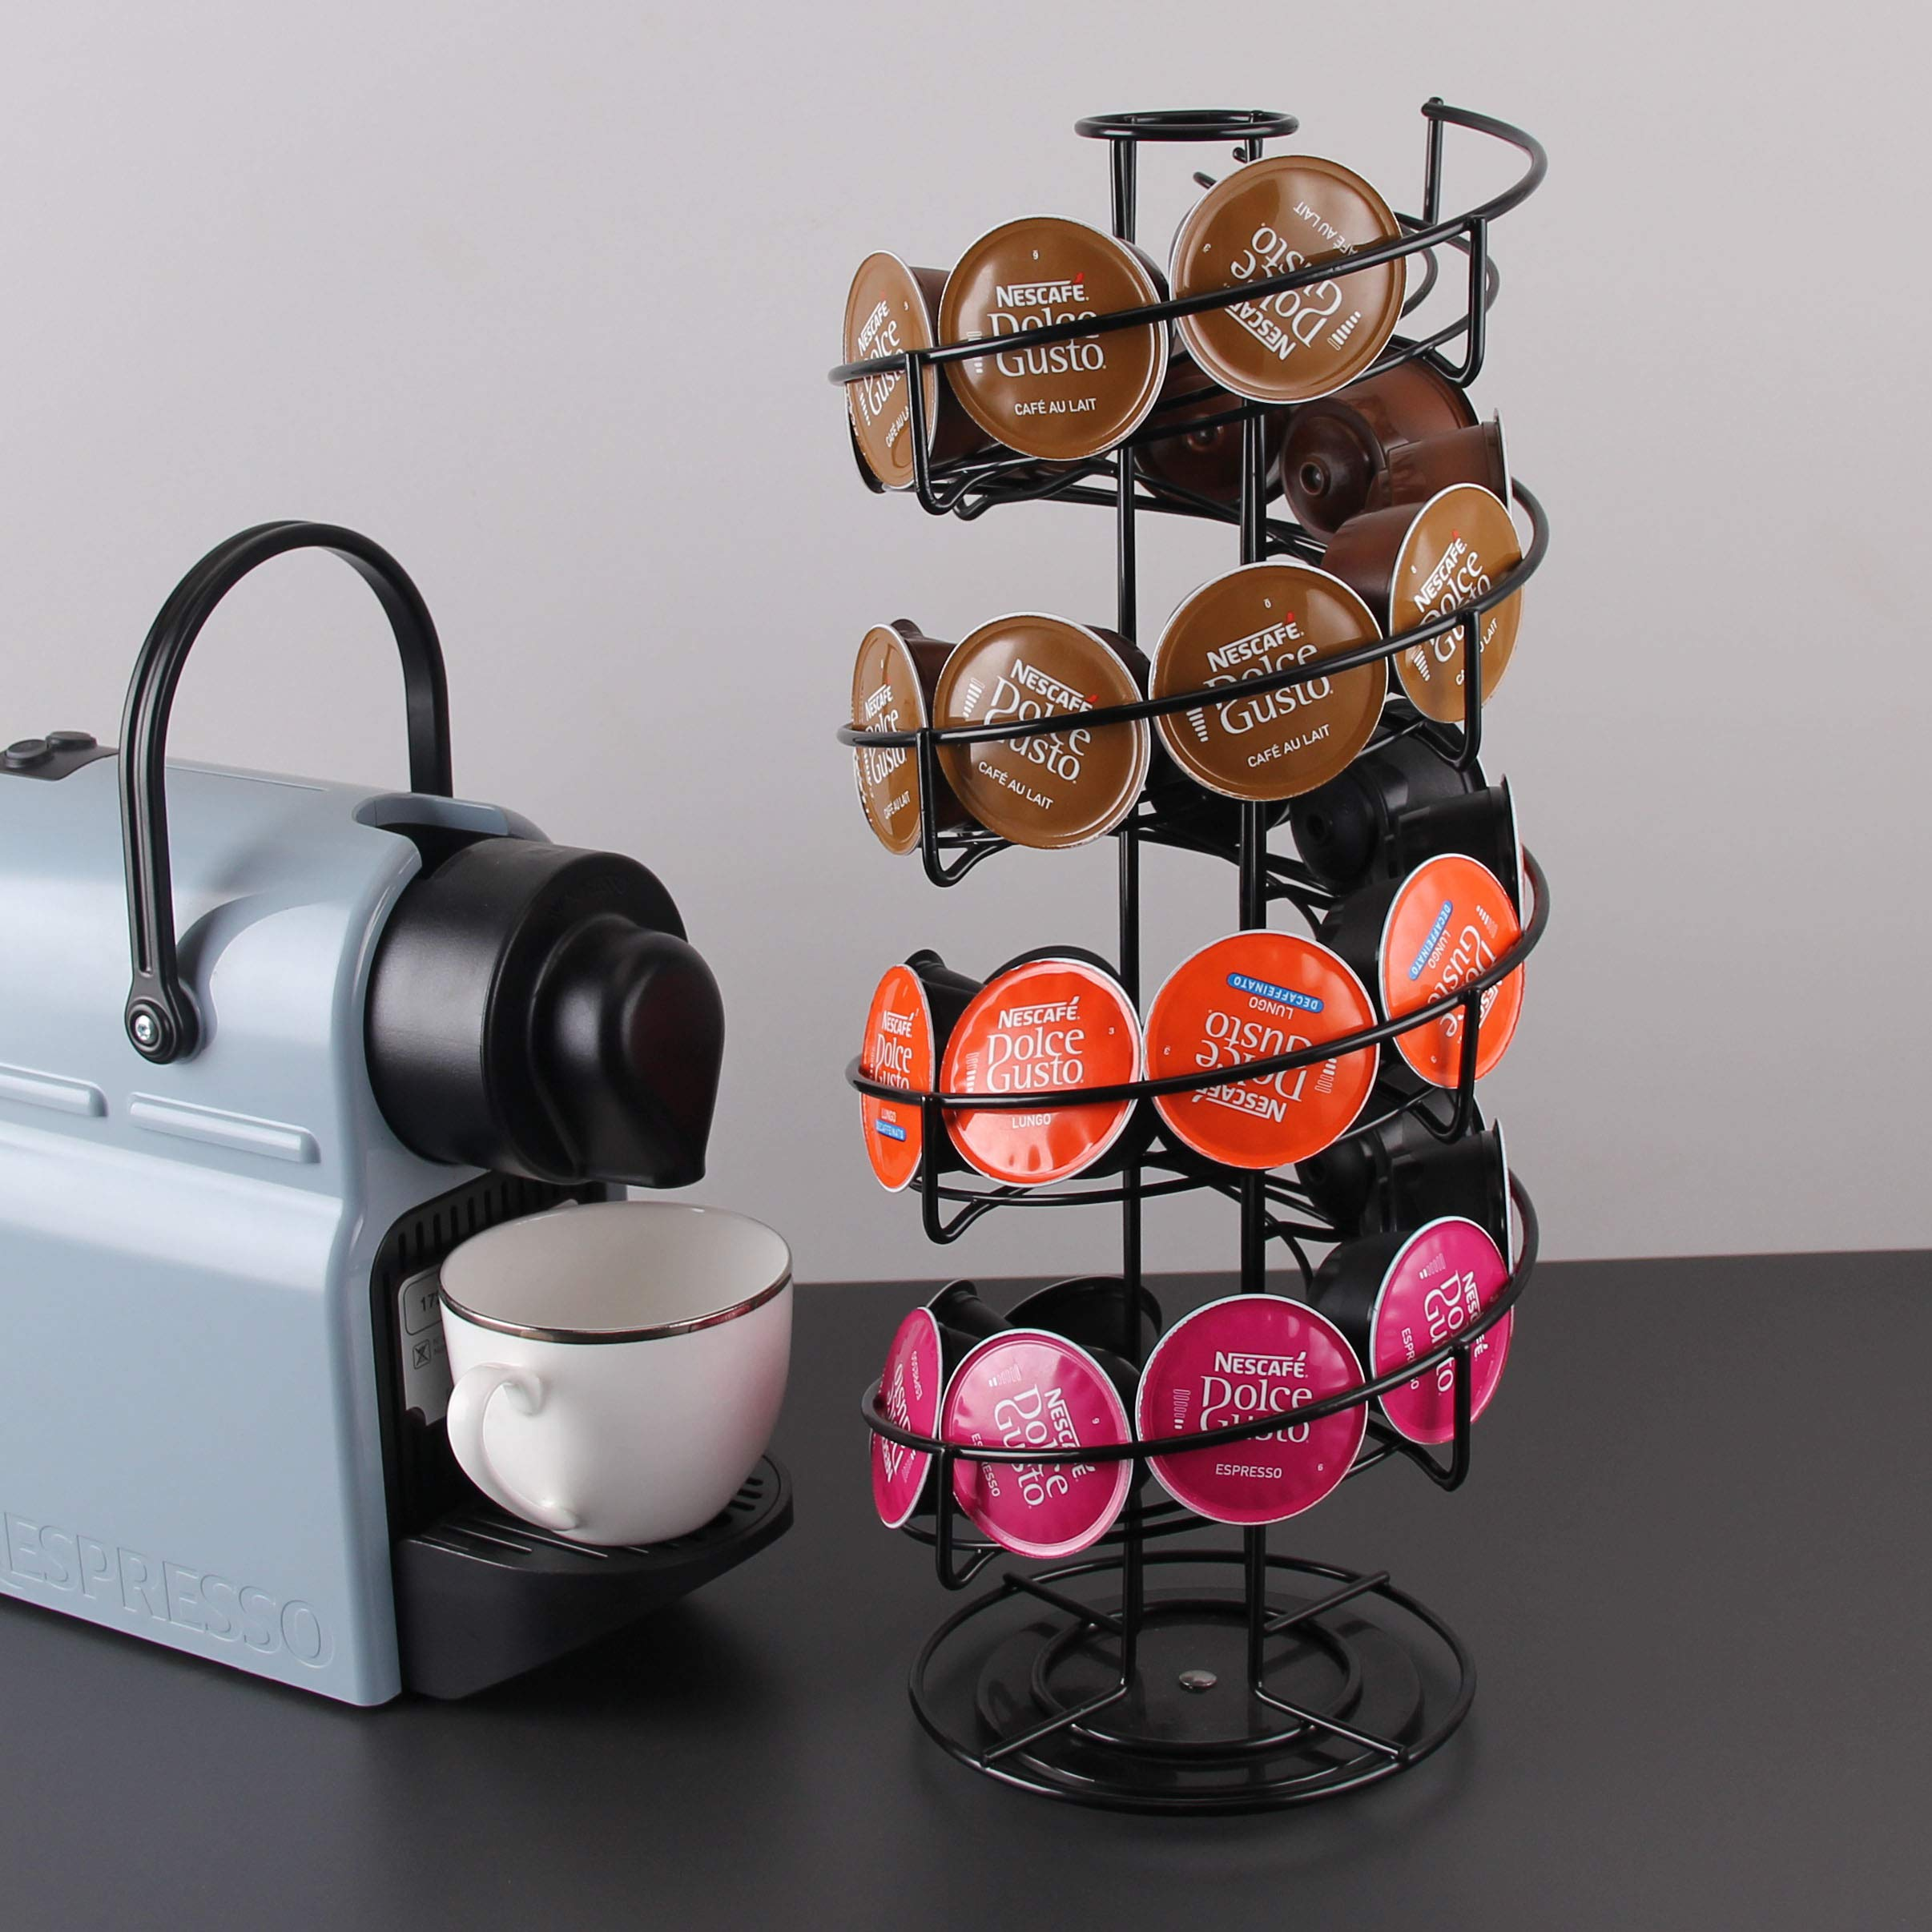 Anles 360 Degree Rotating Coffee Pod Holder Stand - Coffee Storage Carousel for K-Cup Pods - 30 Pod Capacity (Black)